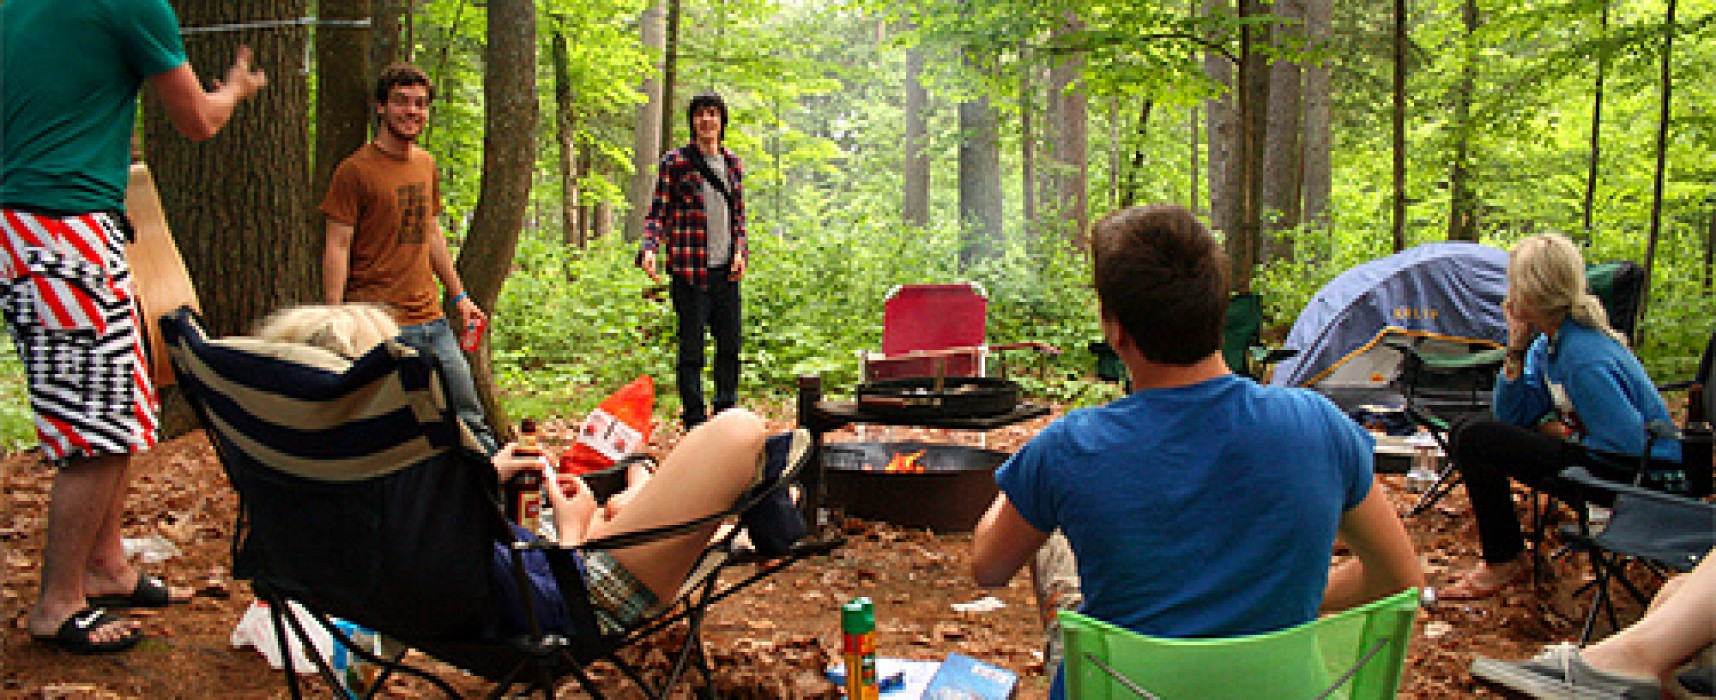 Health and safety advice for camping trips